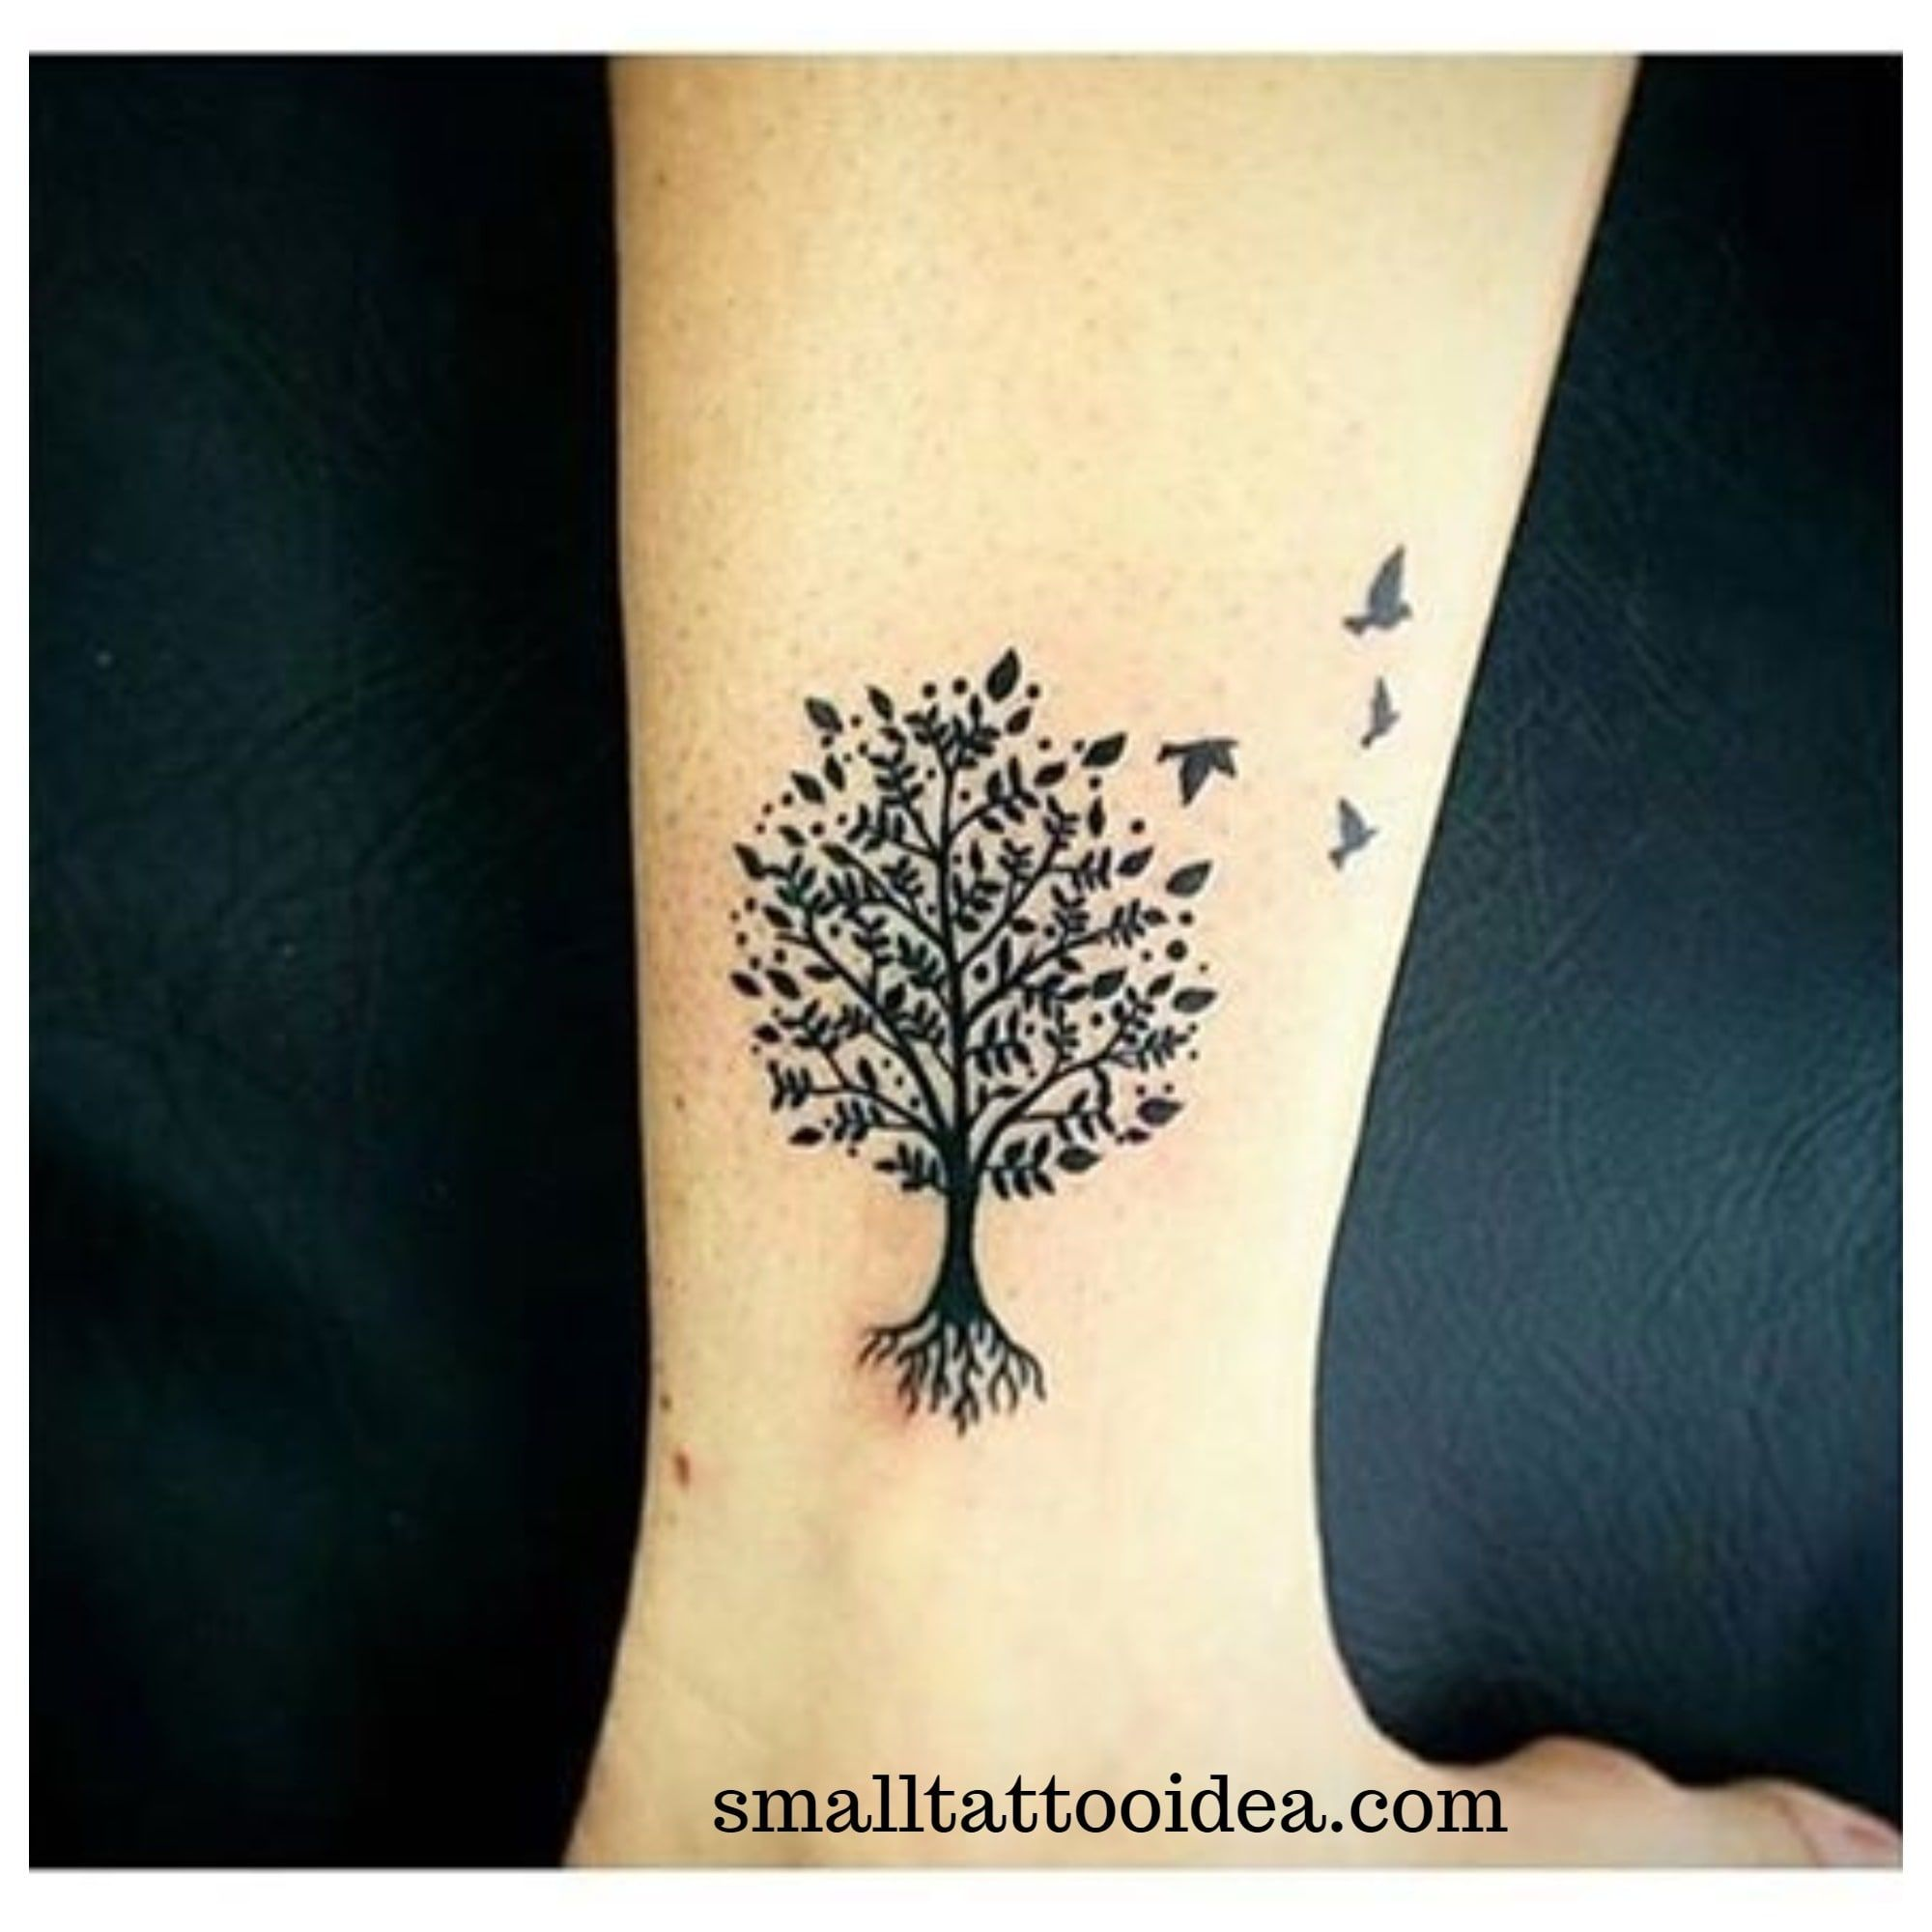 30 Tree Of Life Tattoo Design Small Tattoo Ideas Small Celtic Tattoos Wrist Tattoos For Guys Life Tattoos